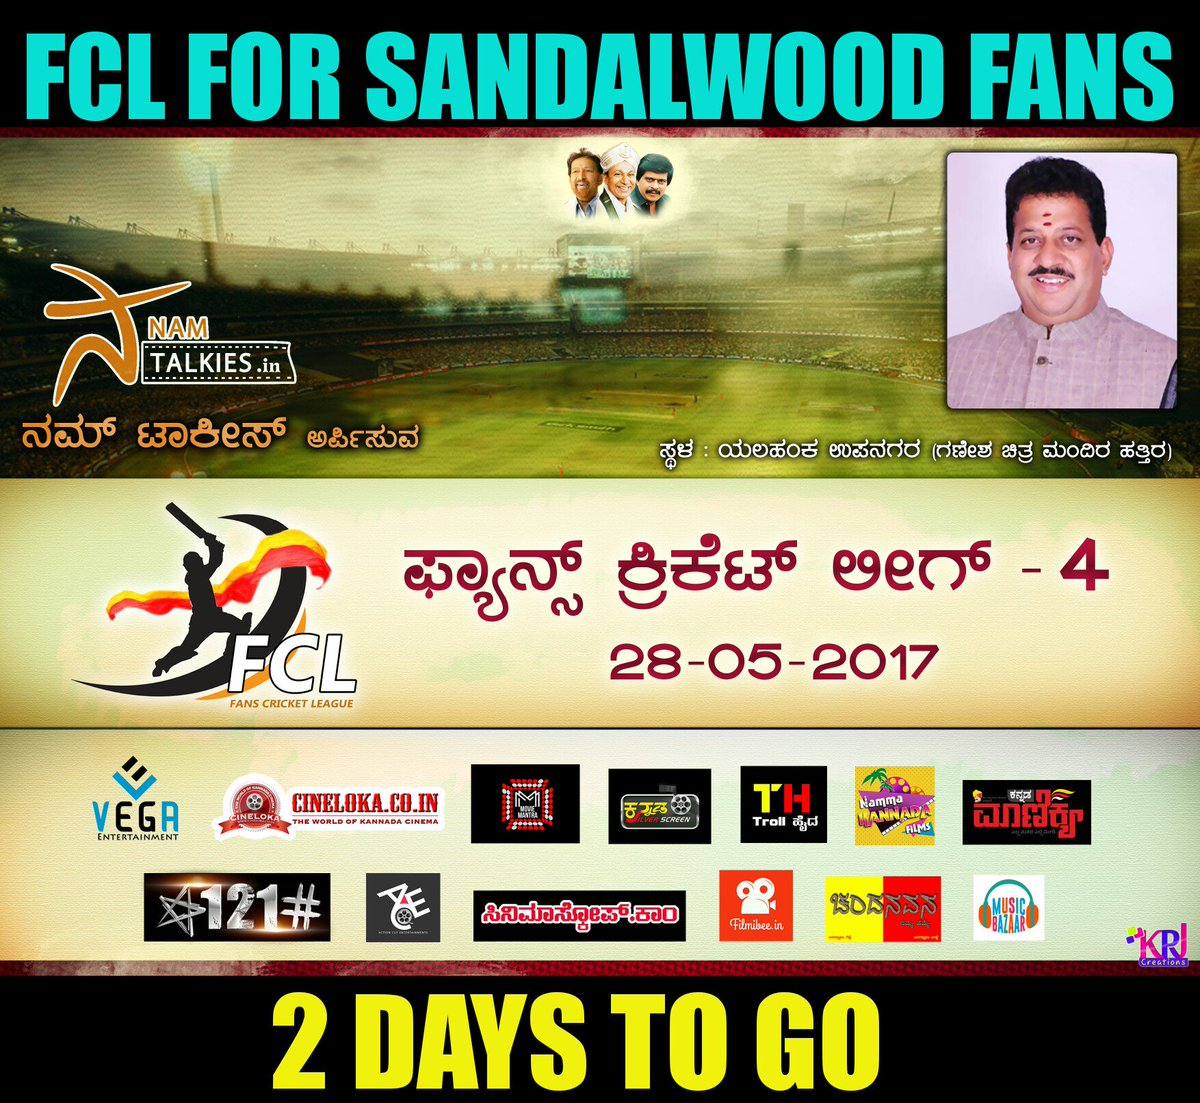 #FCL For #SANDALWOOD Fans  #Fcl4 #Namtalkies #2DaysToGo #May28th #YelahankaNewtown @namtalkies<br>http://pic.twitter.com/UmFysAh348